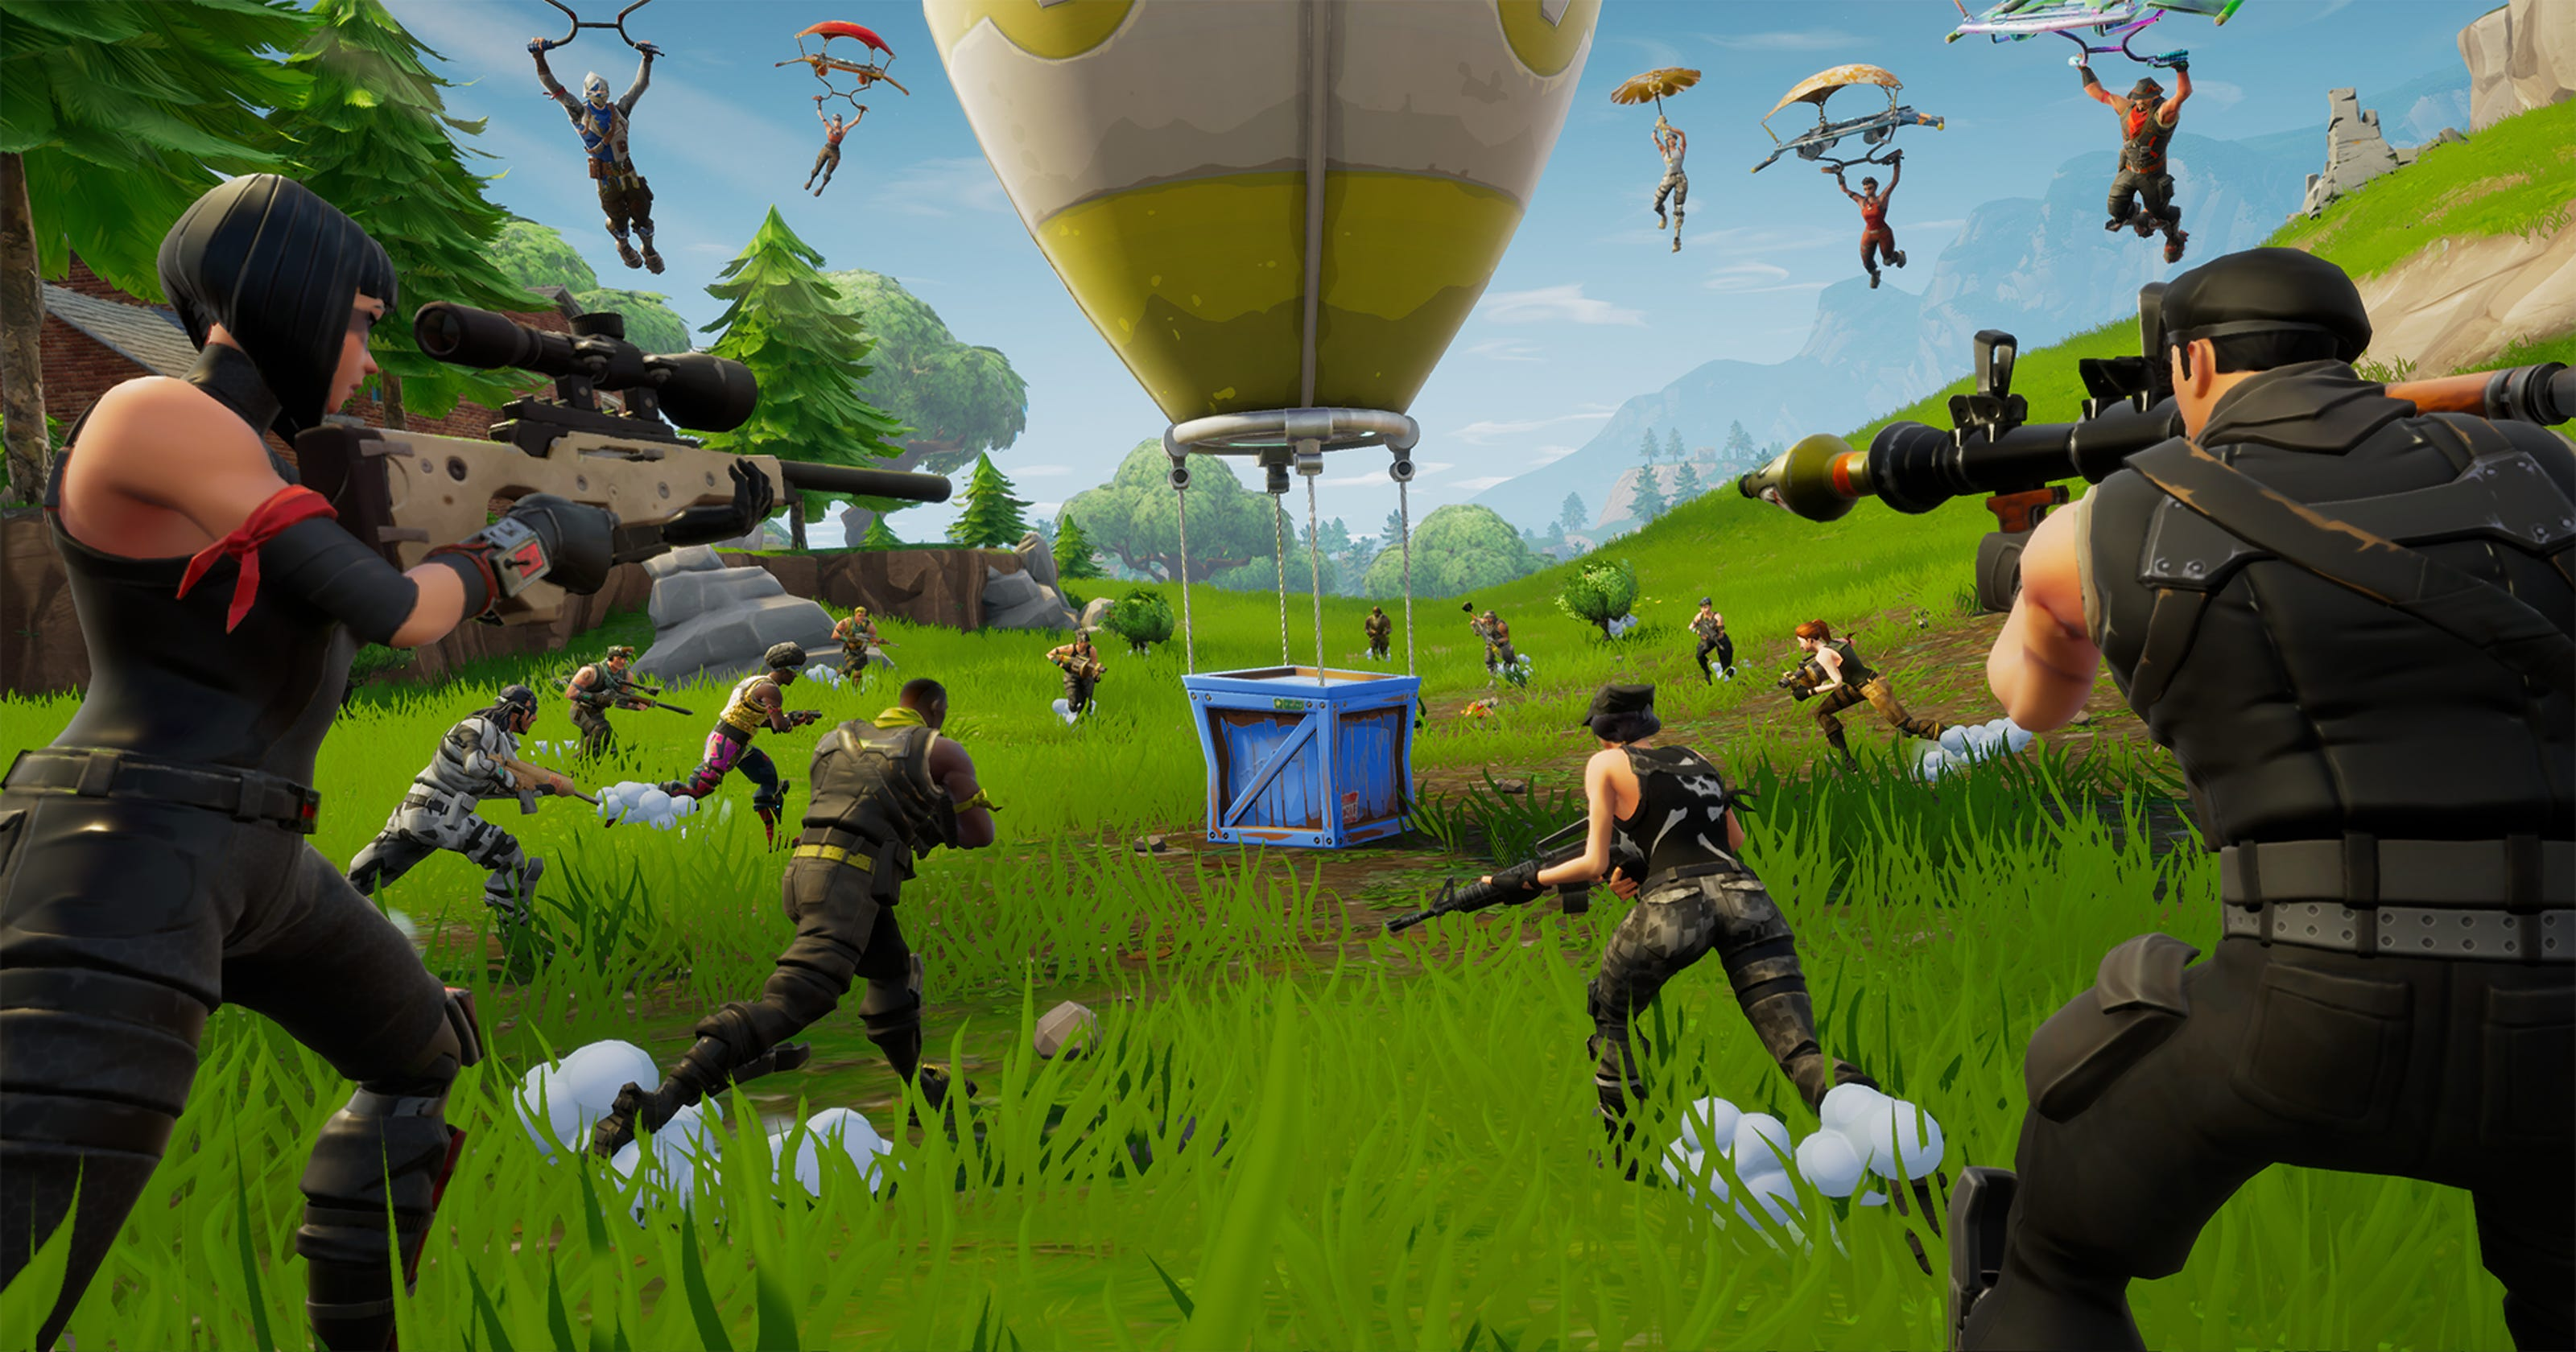 Fortnite Kicks Off Season 8 But Could The Game Have Already Peaked